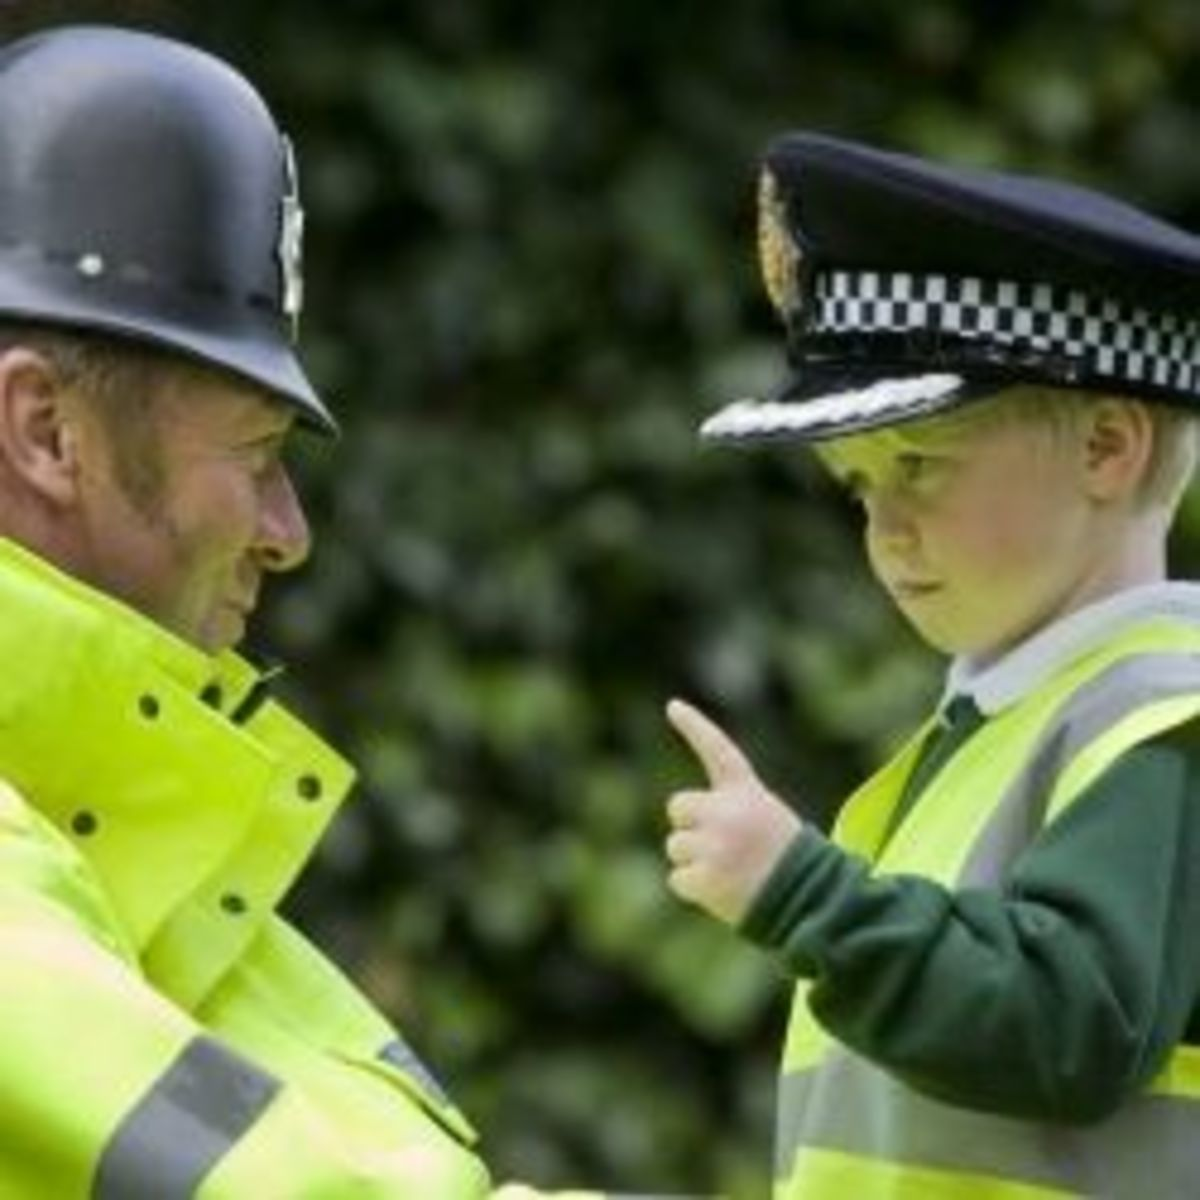 Image credit: http://www.kidsconfidential.co.uk/Health-and-Beauty/Police-unveil-new-toddler-uniform